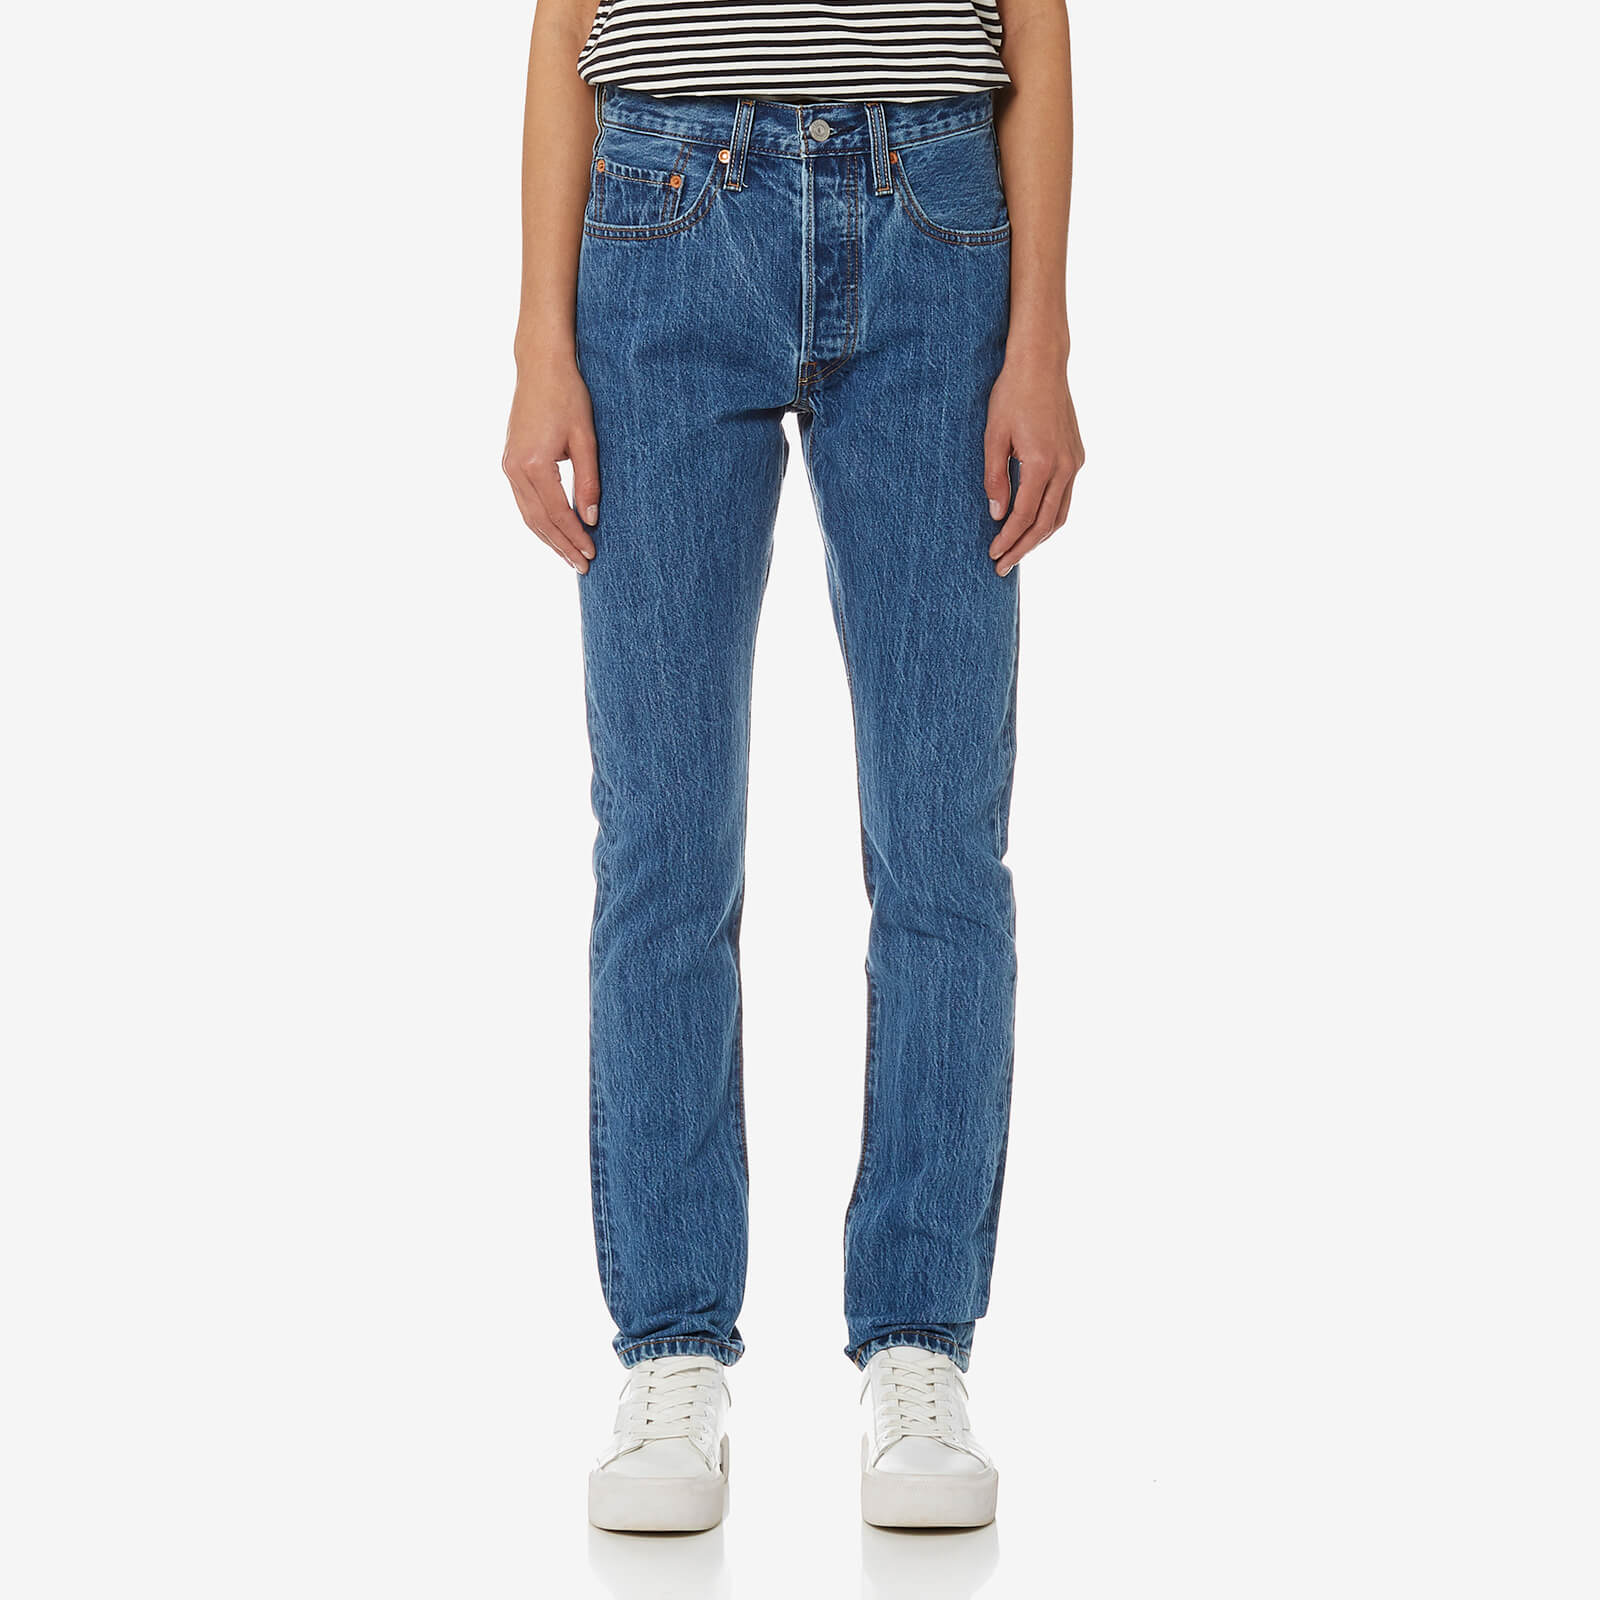 1f88cbf65250 Levi's Women's 501 Skinny Jeans - Rolling Dice - Free UK Delivery over £50